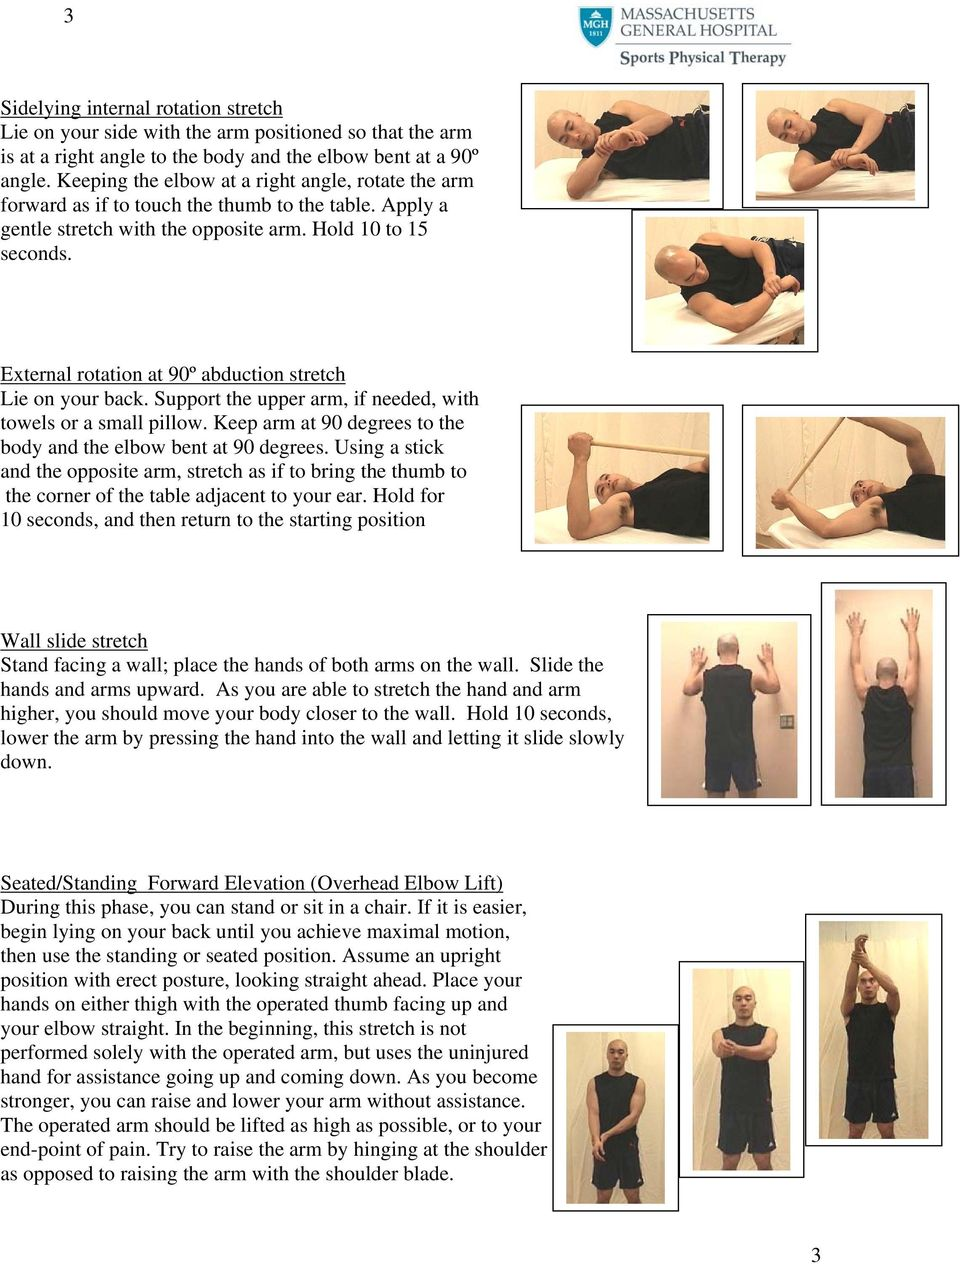 External rotation at 90º abduction stretch Lie on your back. Support the upper arm, if needed, with towels or a small pillow. Keep arm at 90 degrees to the body and the elbow bent at 90 degrees.